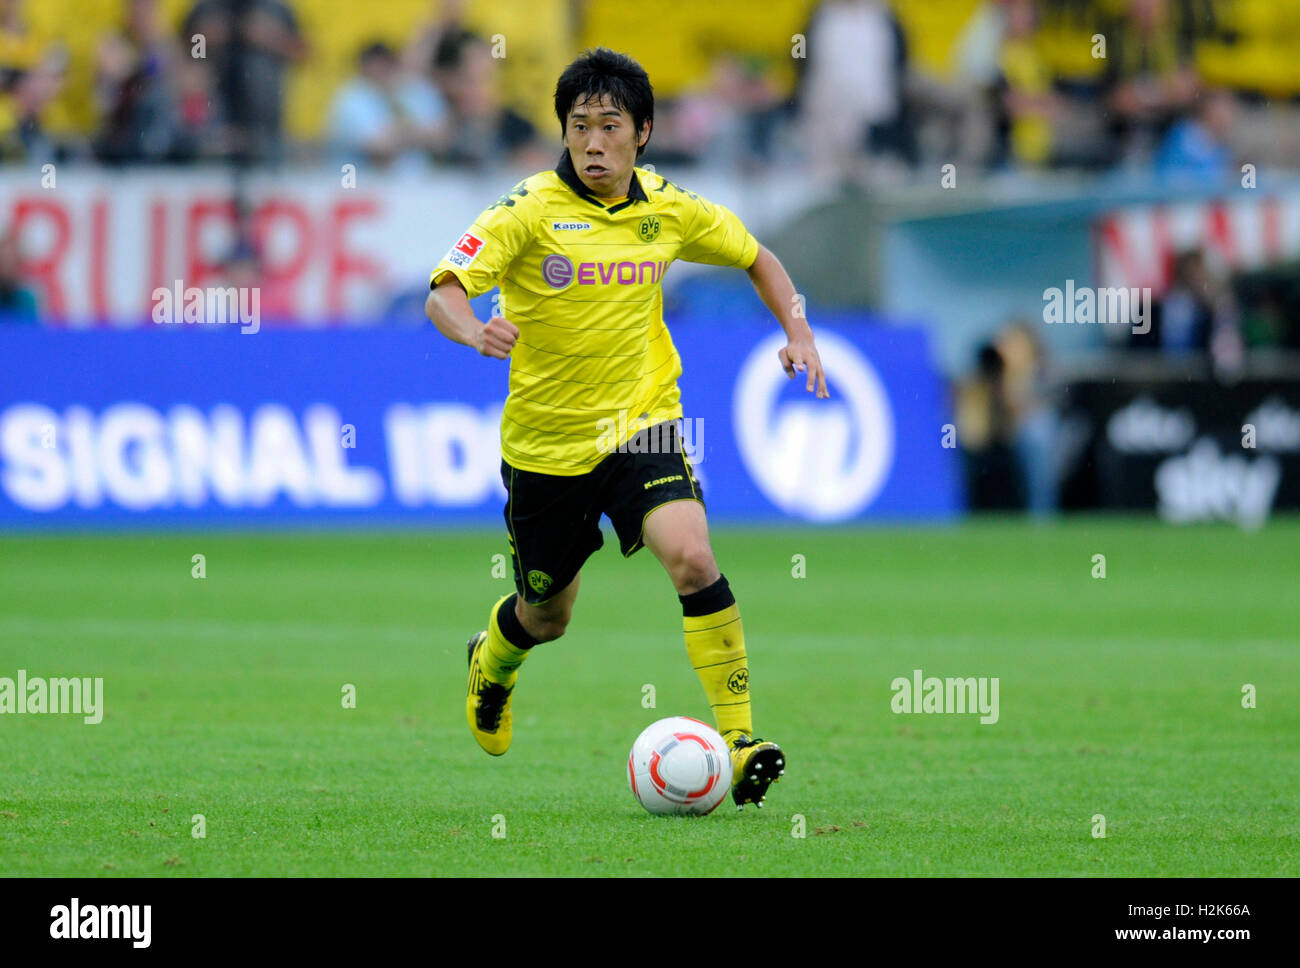 Fussball-Bundesliga, professional association football league in Germany, Season 2010-2011, 1st match of the round, - Stock Image